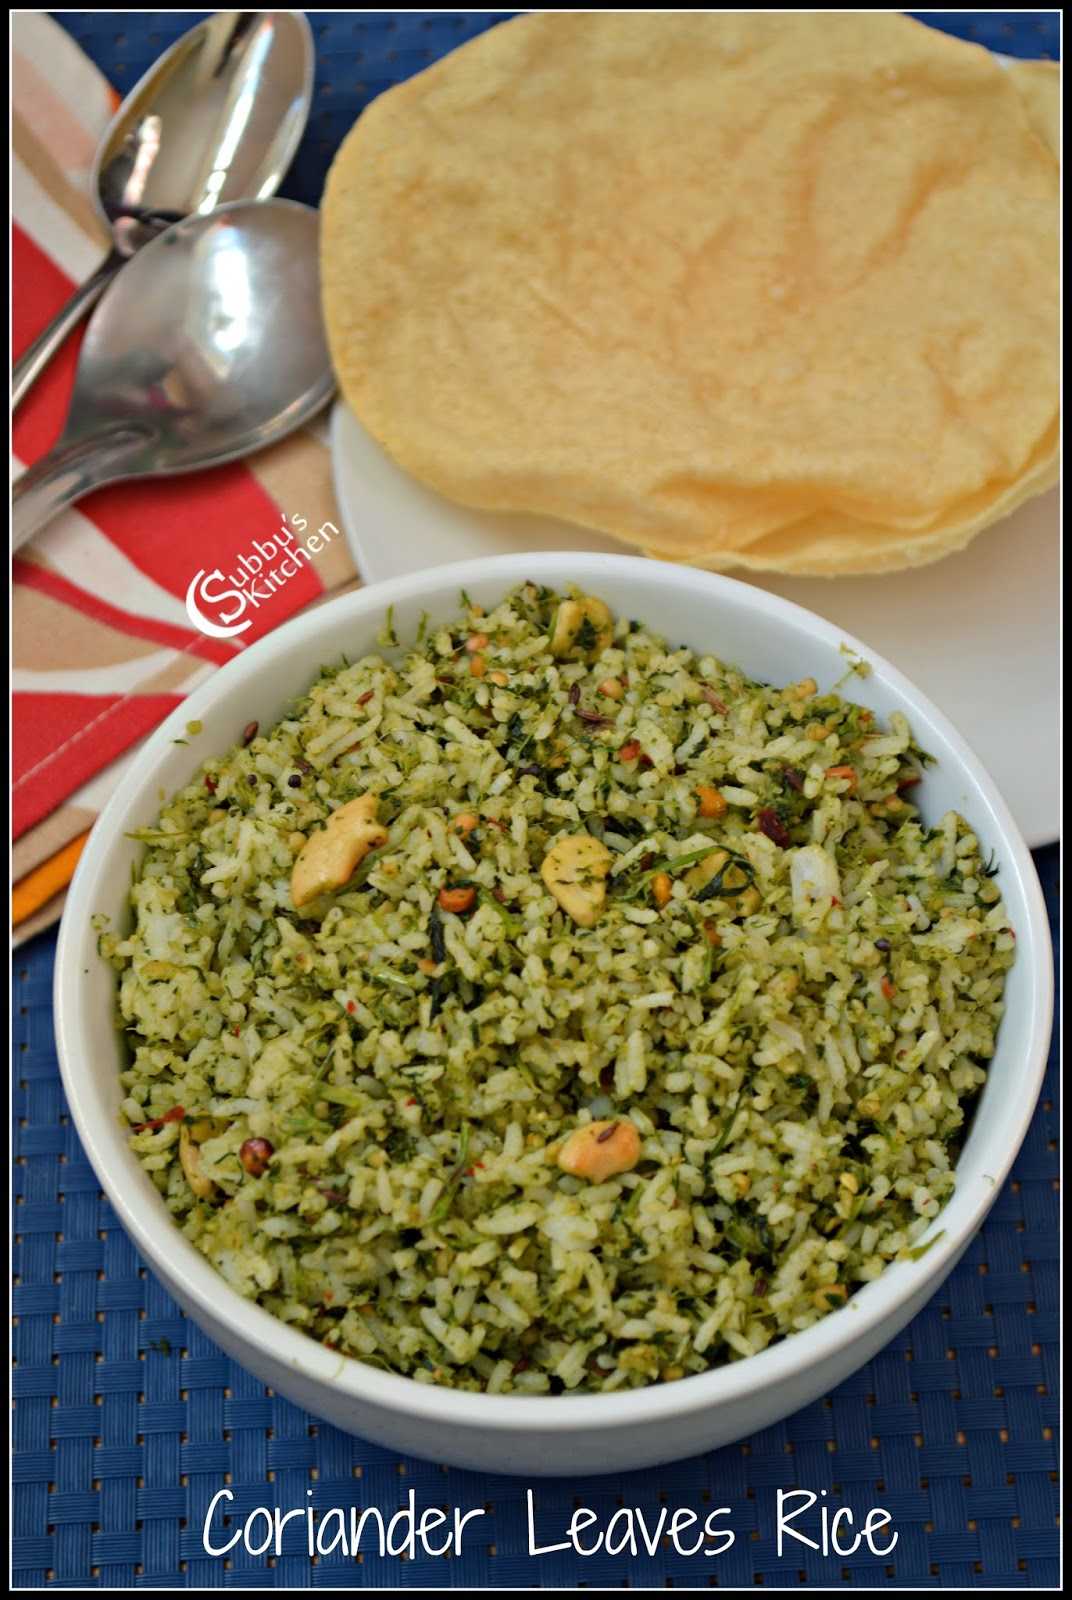 Kothamalli Rice(Corainder Leaves Rice)